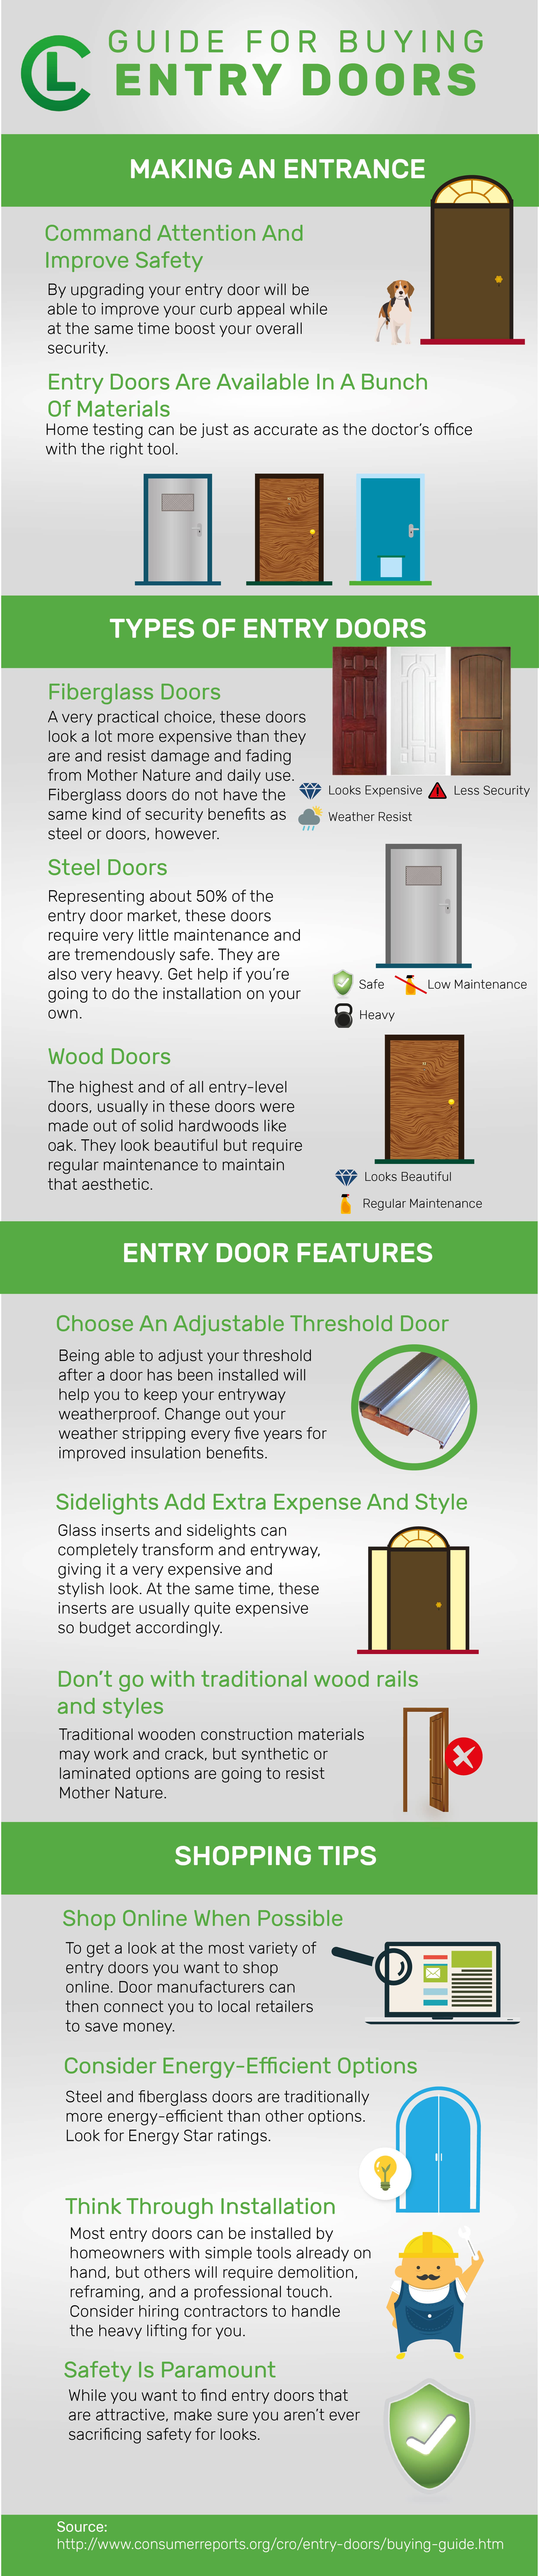 guide for buying entry doors